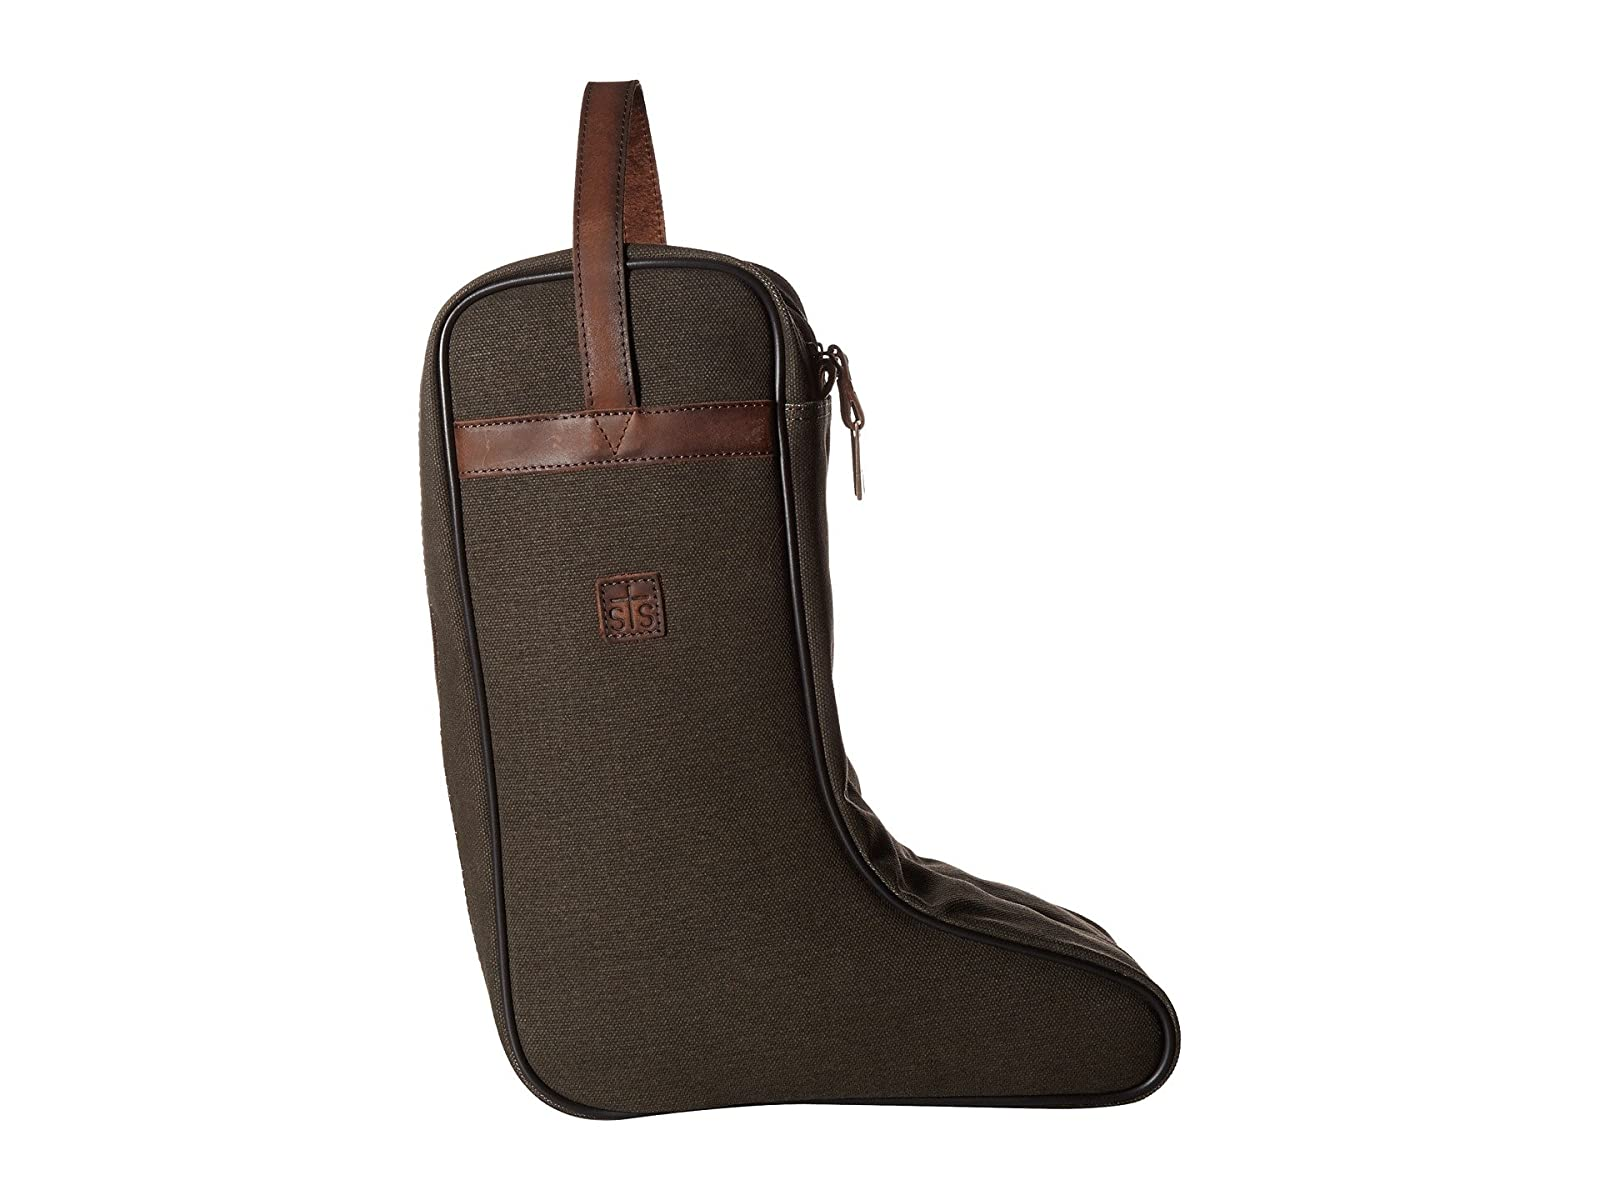 STS Ranchwear STS Boot BagAtmospheric grades have affordable shoes